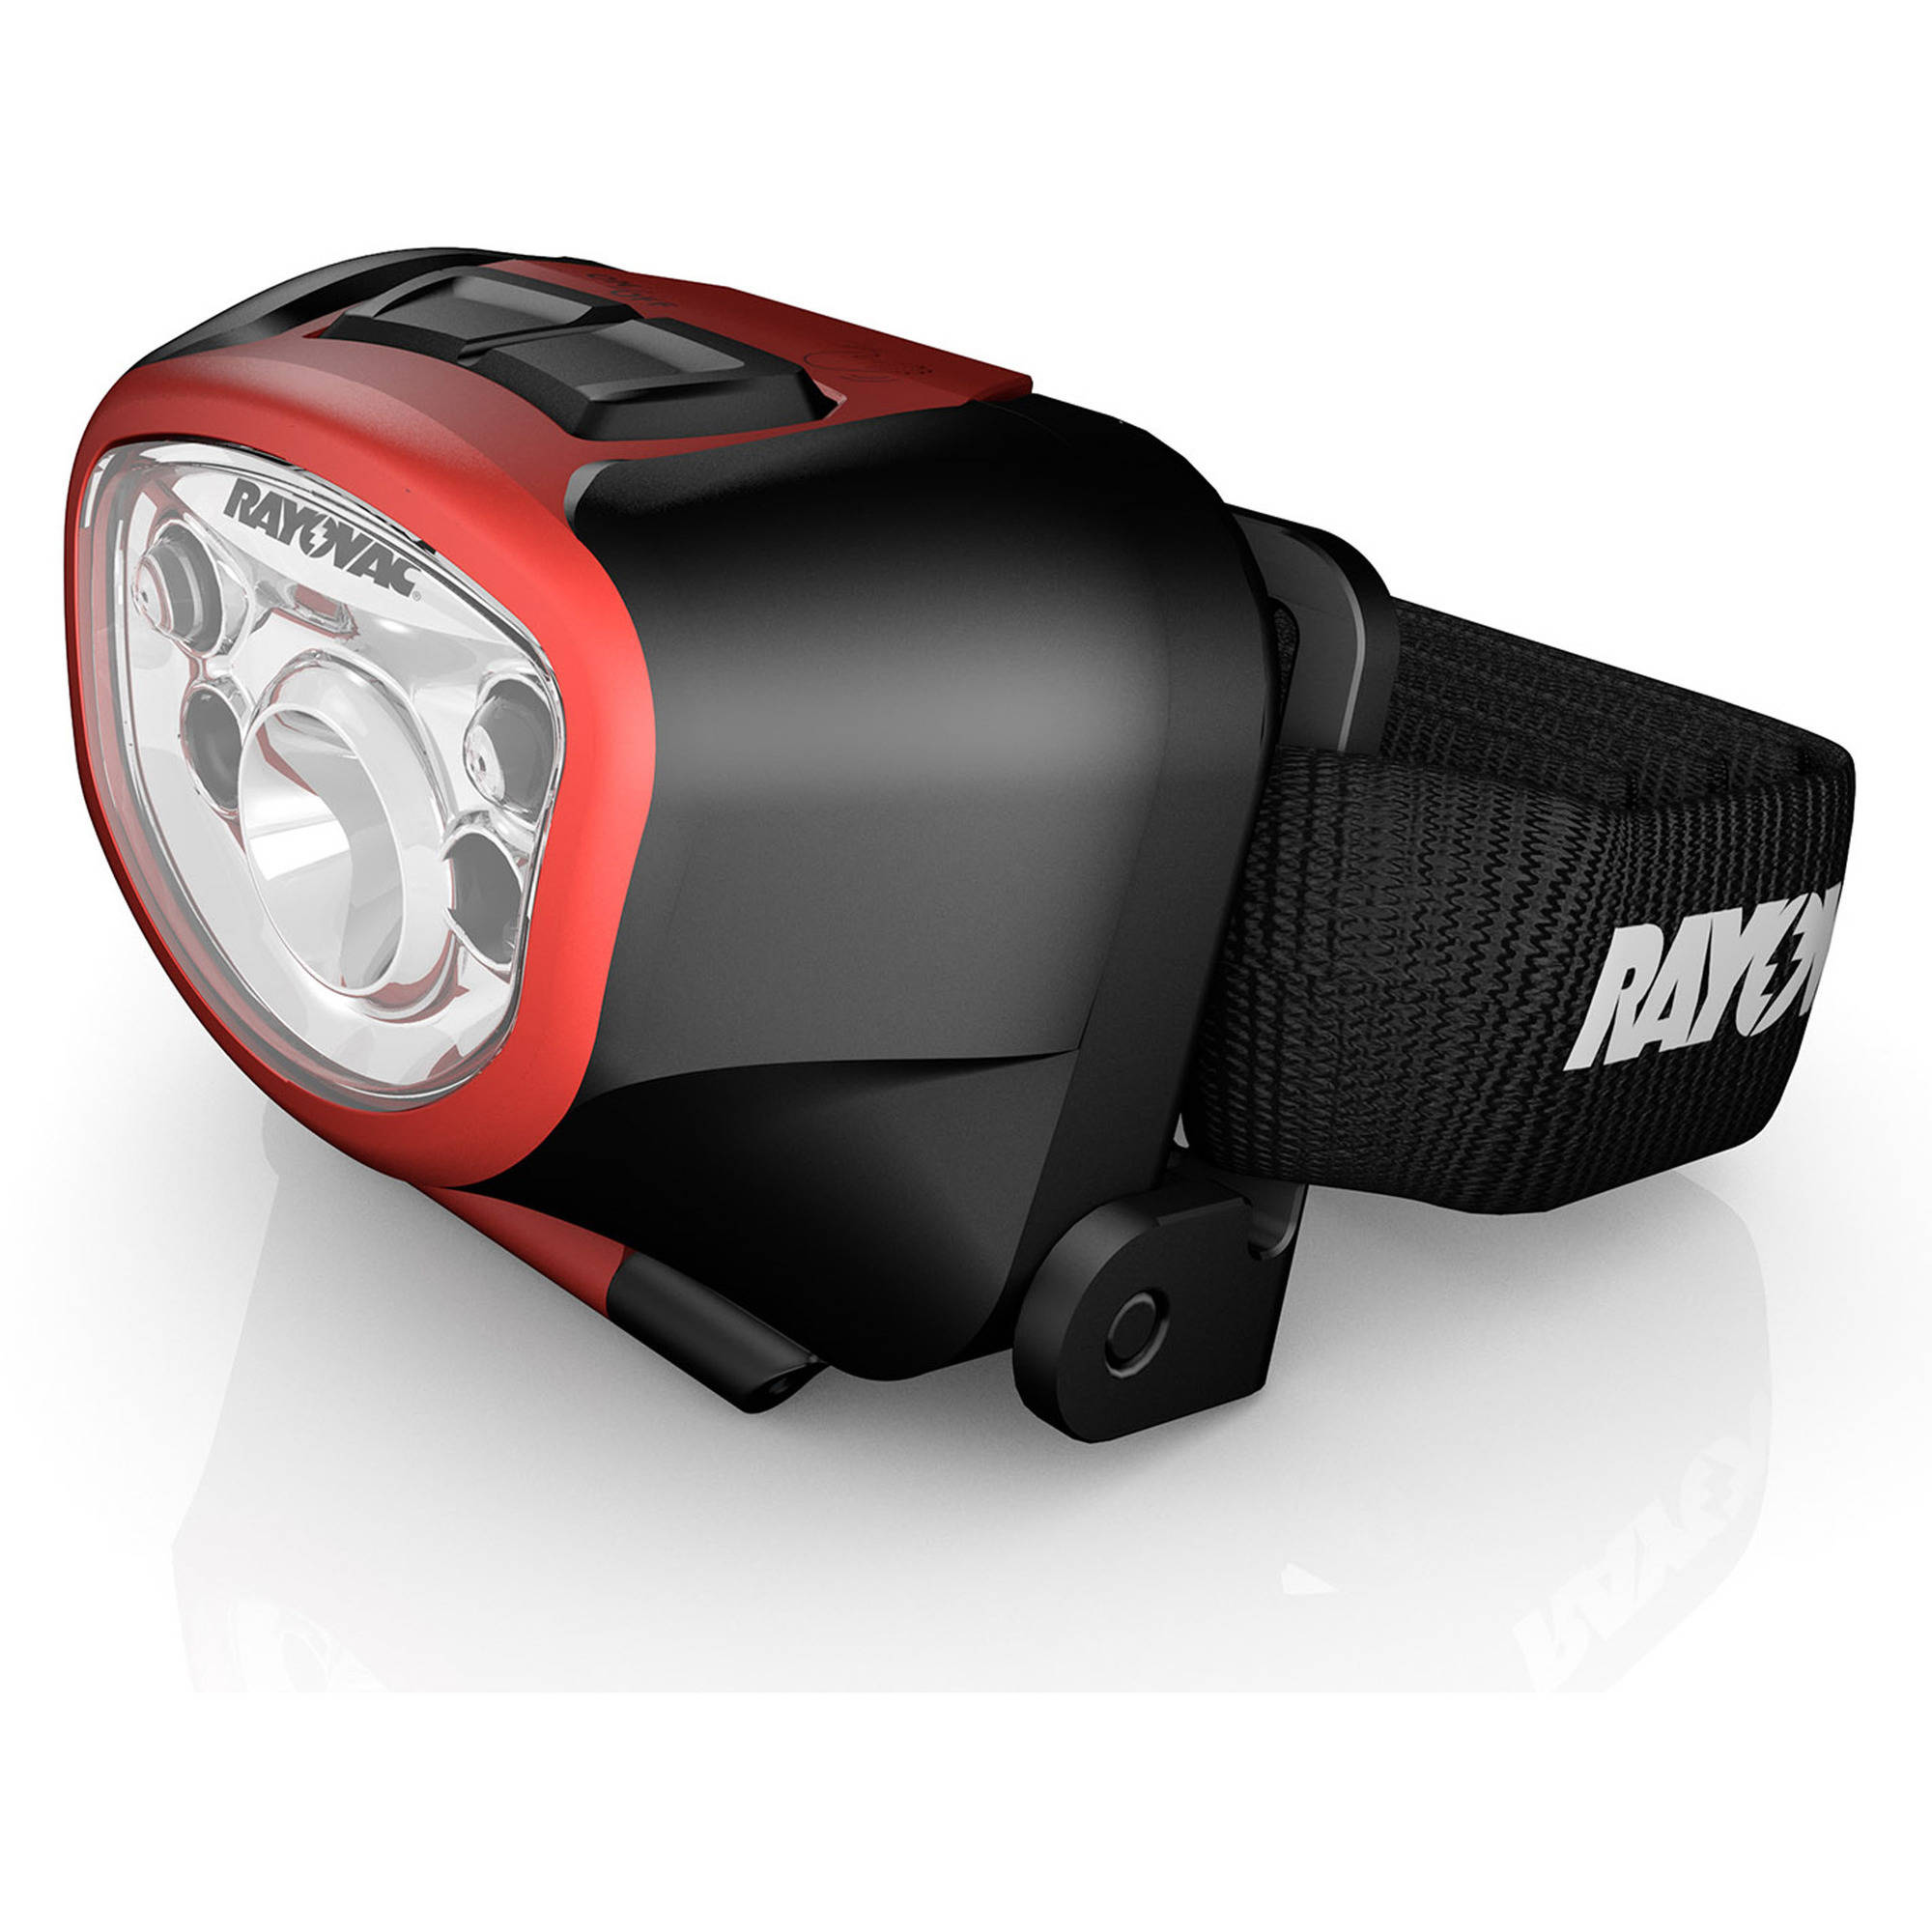 Rayovac Hands-Free 3 AAA Headlight